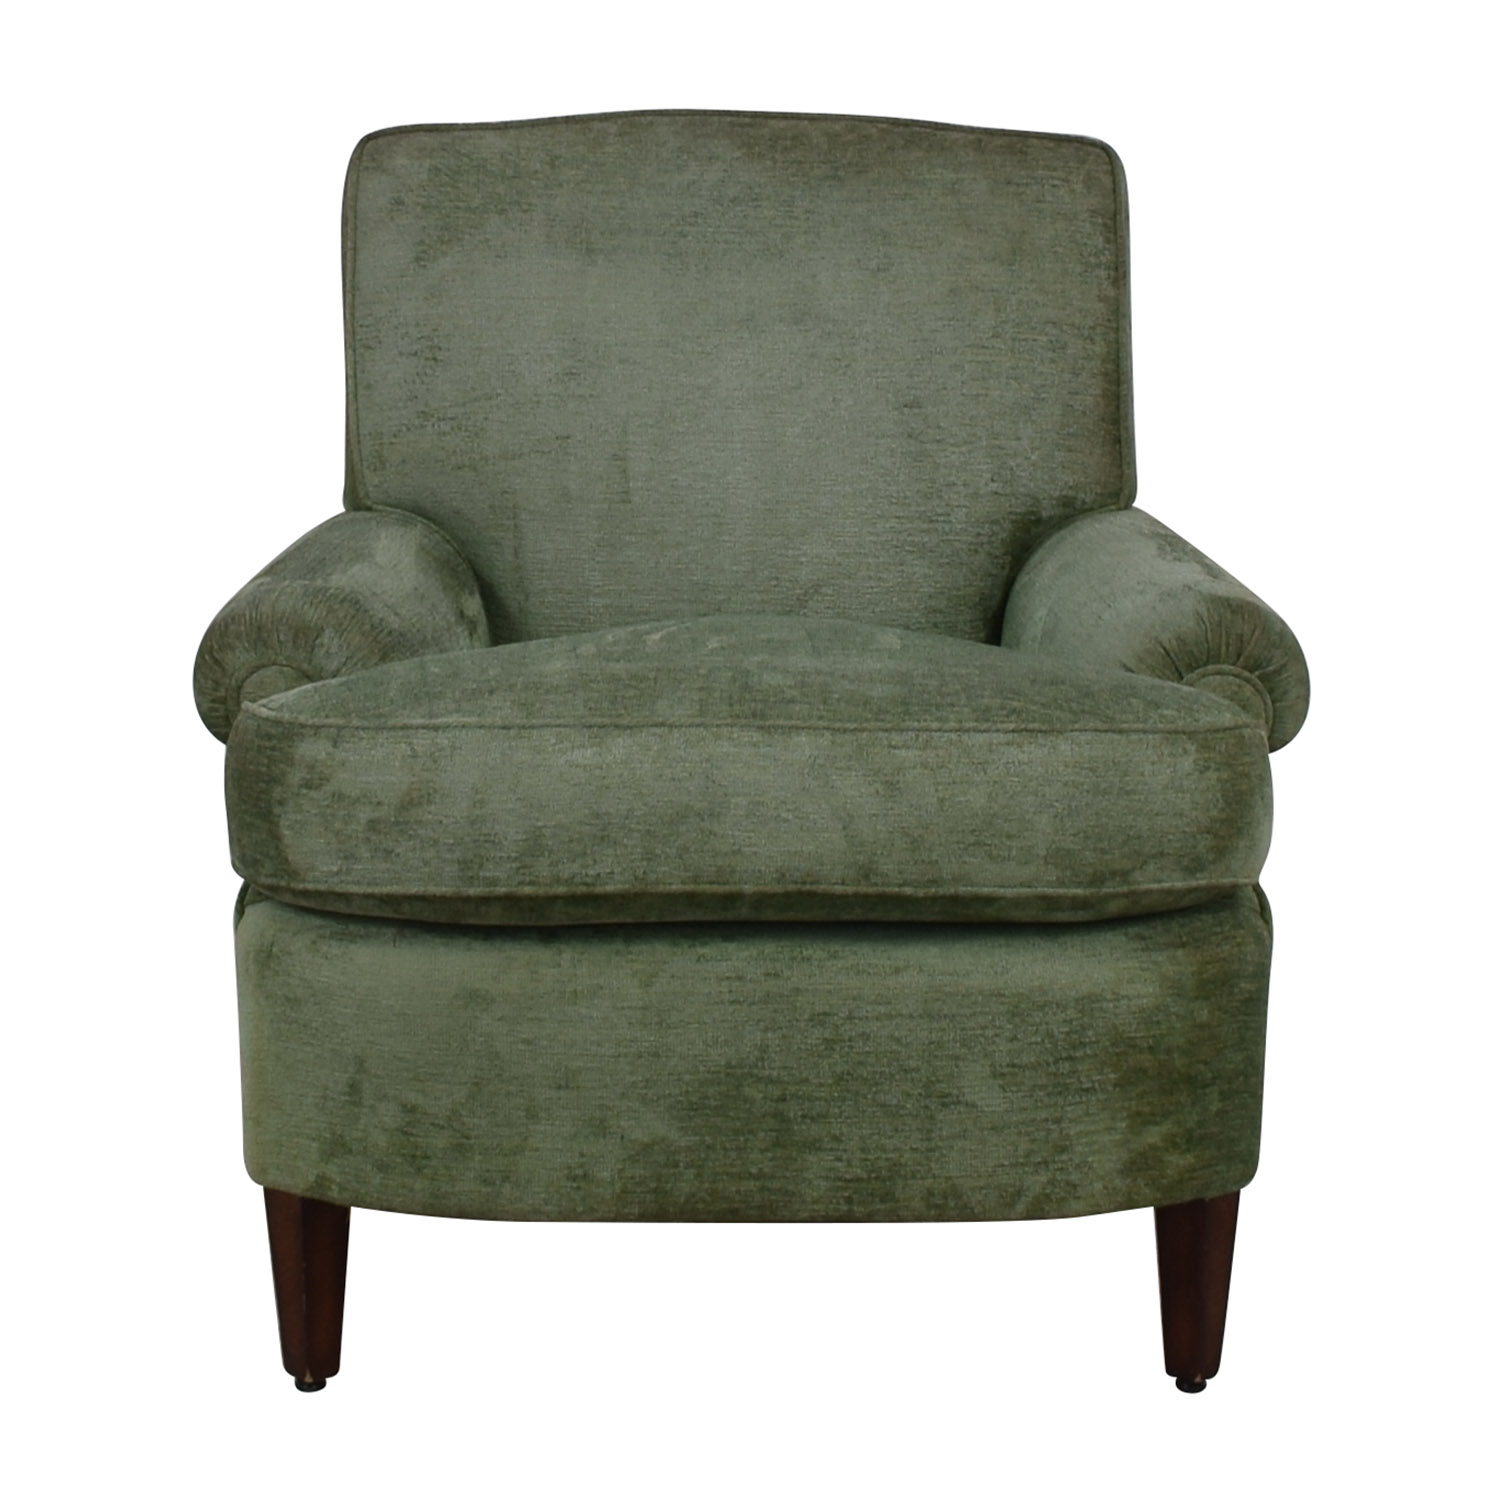 Furniture Masters Furniture Masters Green Accent Chair Chairs